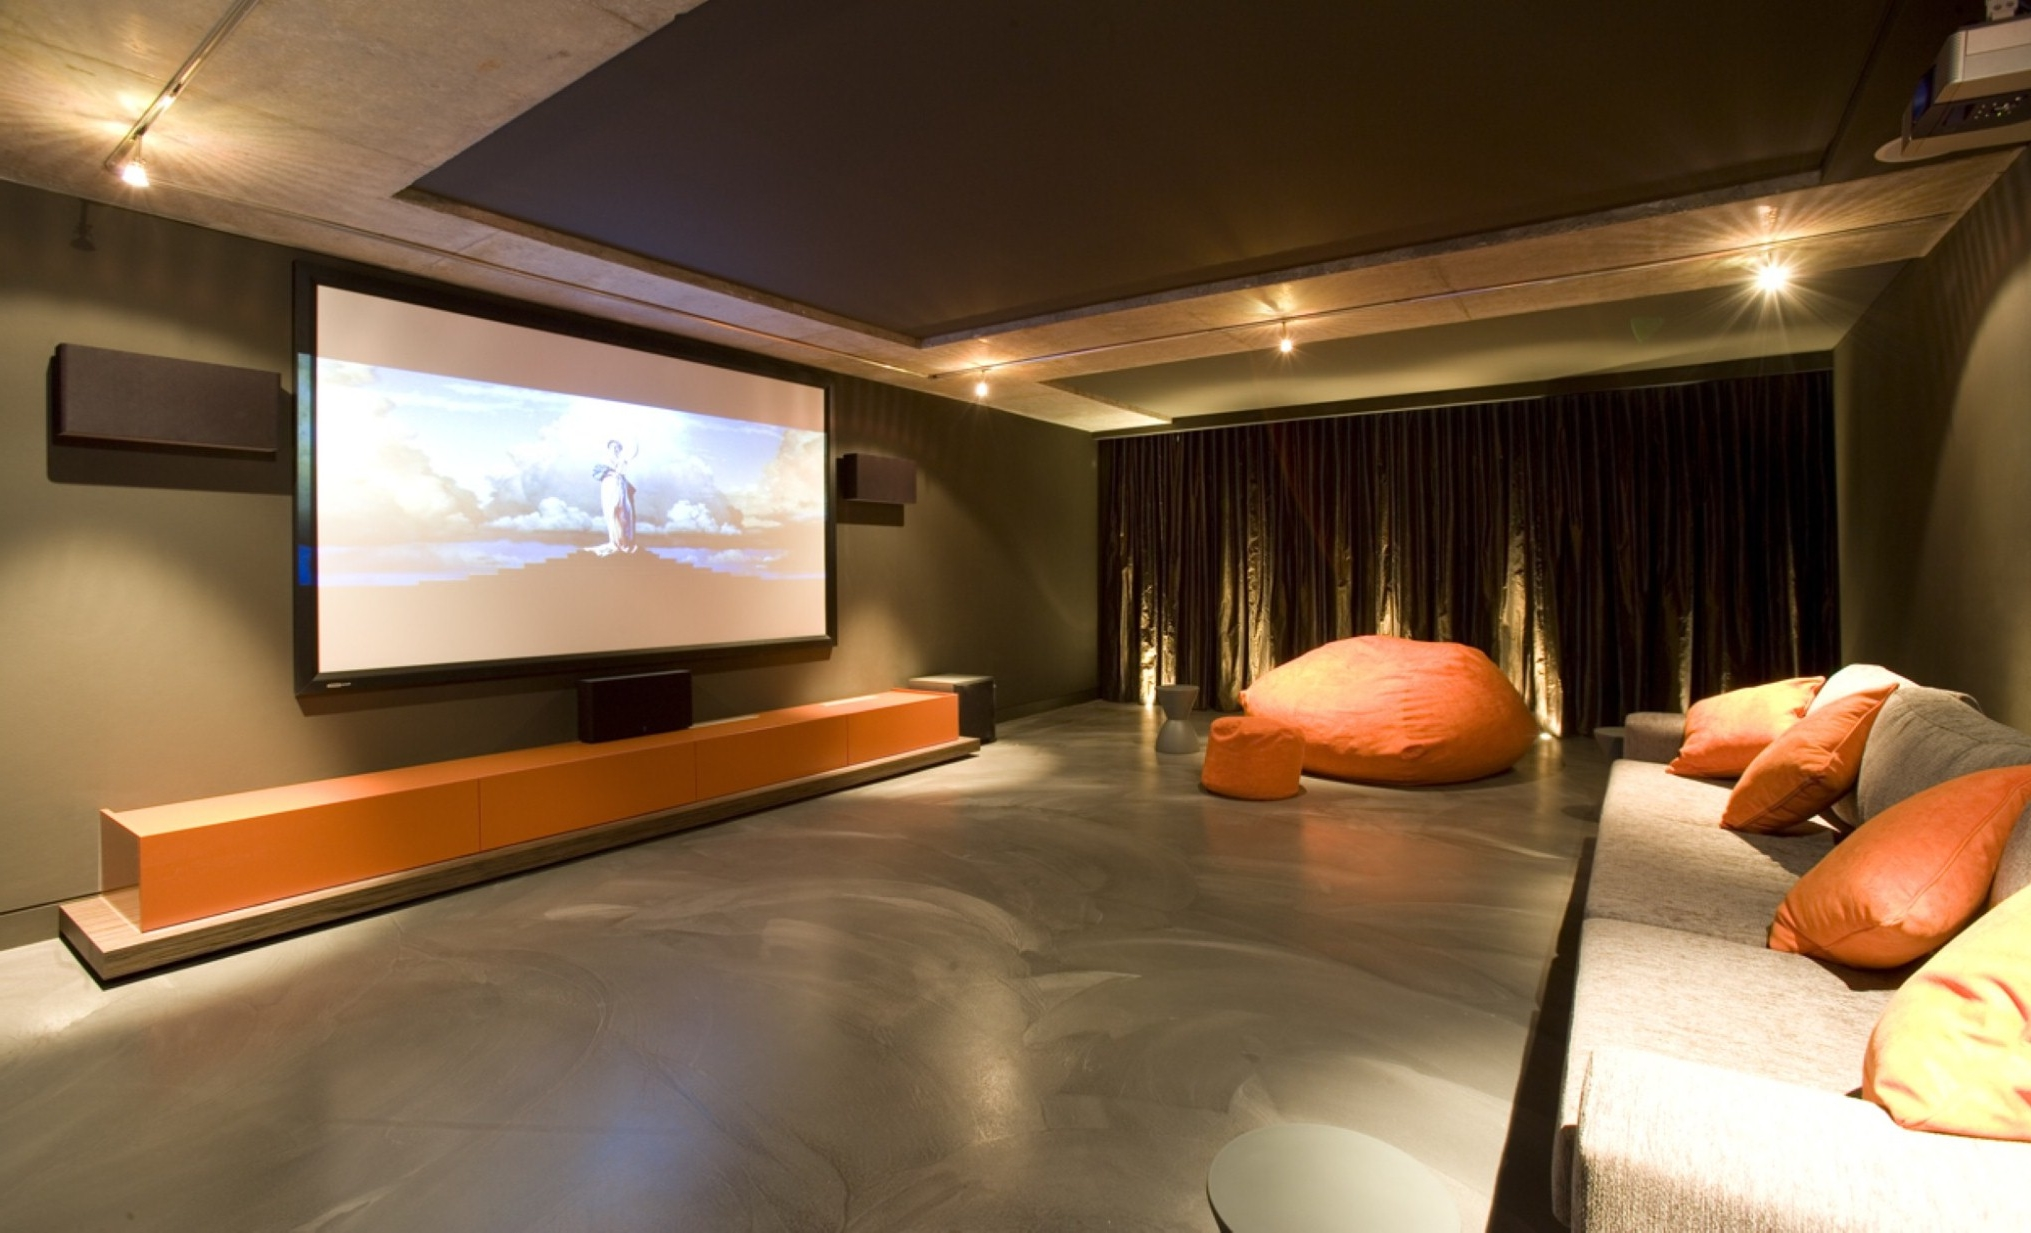 Pretty Brown Theater Room With Cheerful Orange Interior Set Accent Plus Dim Lighting Decor (Image 18 of 28)